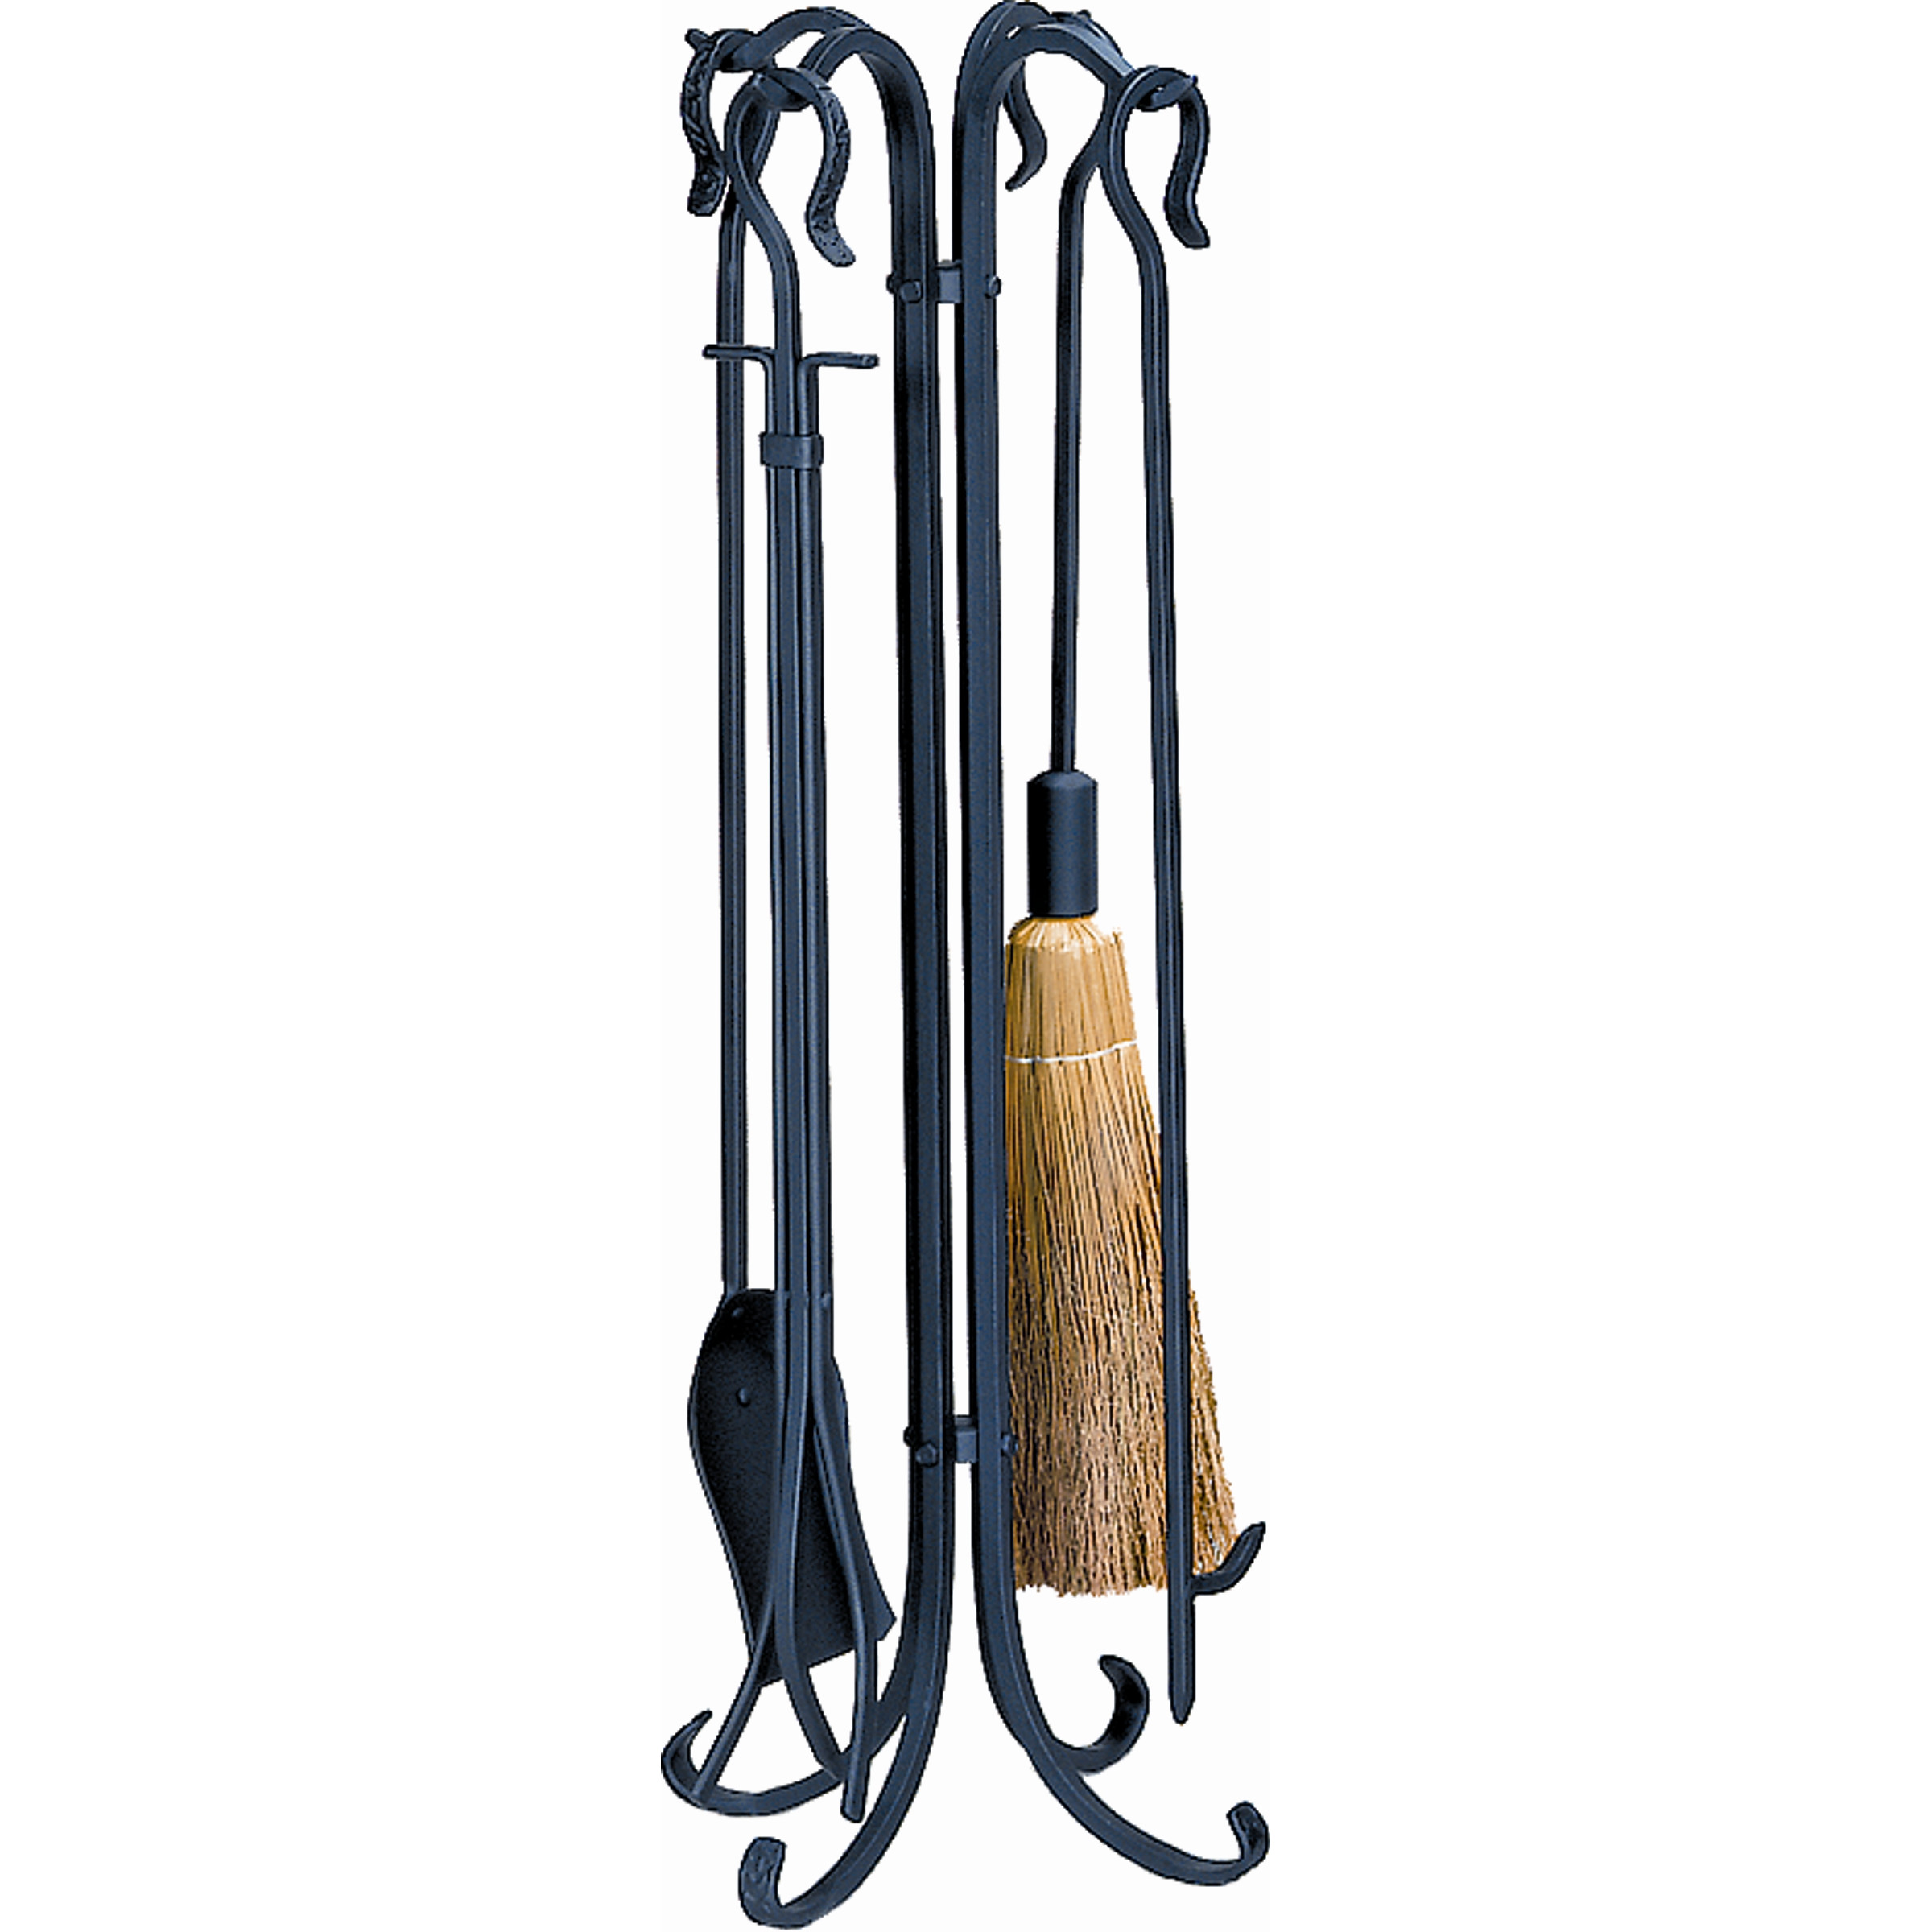 Exquisite wrought iron fireplace tools pine firelace tool for your home interior tool improvements